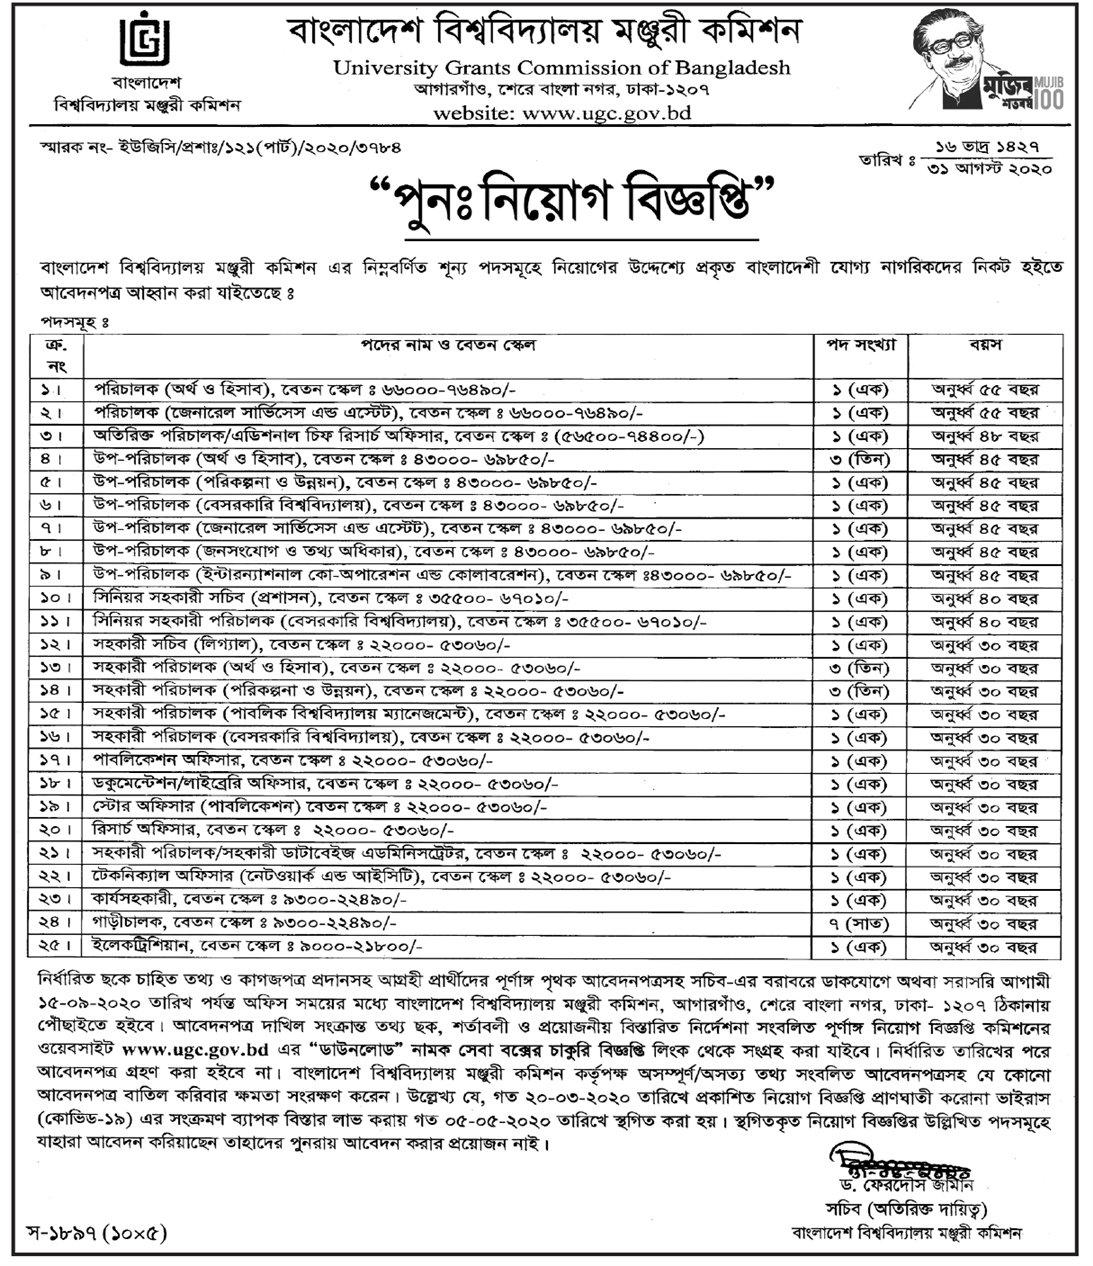 University Grants Commission of Bangladesh Job circular 2020